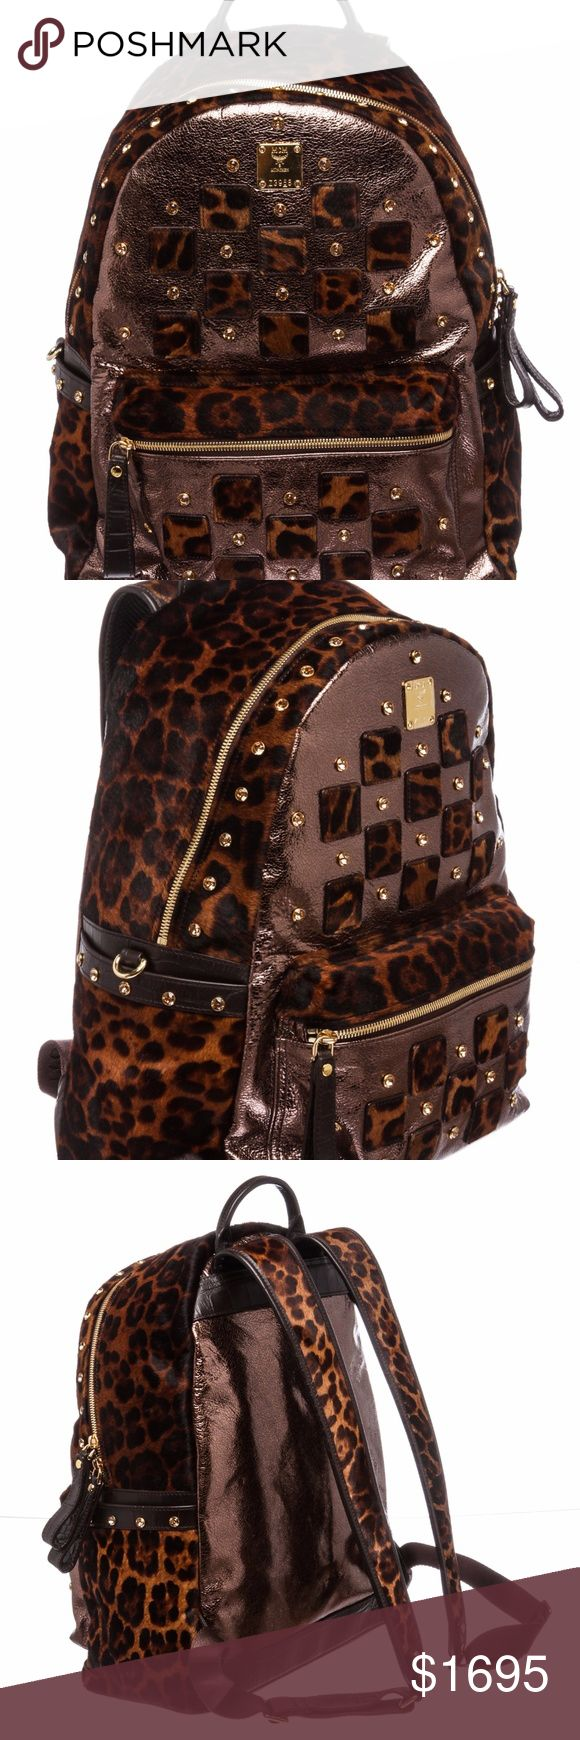 MCM Brown Pony Hair Rhinestone Studded Backpack This special edition brown leopard print pony hair rhinestone studded MCM backpack with gold color hardware, dual adjustable shoulder straps, single rolled handle at top, and zip pocket at front face, brown satin interior lining, expandable wall pocket with zip pocket, one side slip pocket and zip closure at top.   3617MSC MCM Bags Backpacks